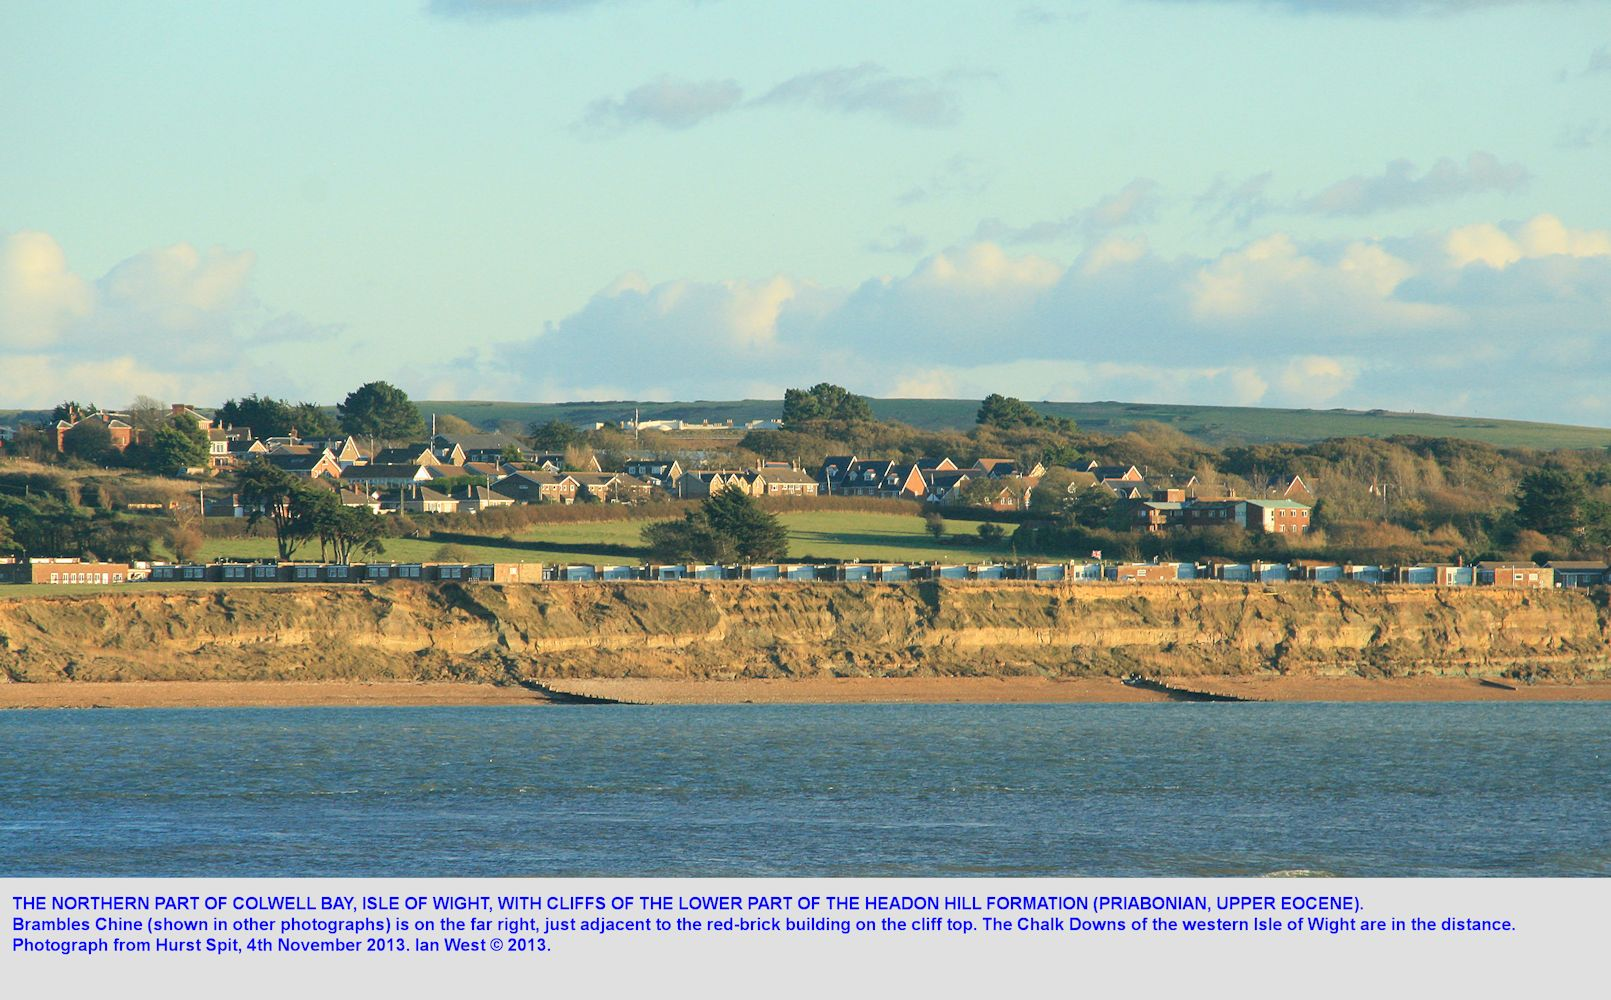 A northern part of Colwell Bay, north of Brambles Chine, Isle of Wight, as seen from Hurst Spit, 4th November 2013